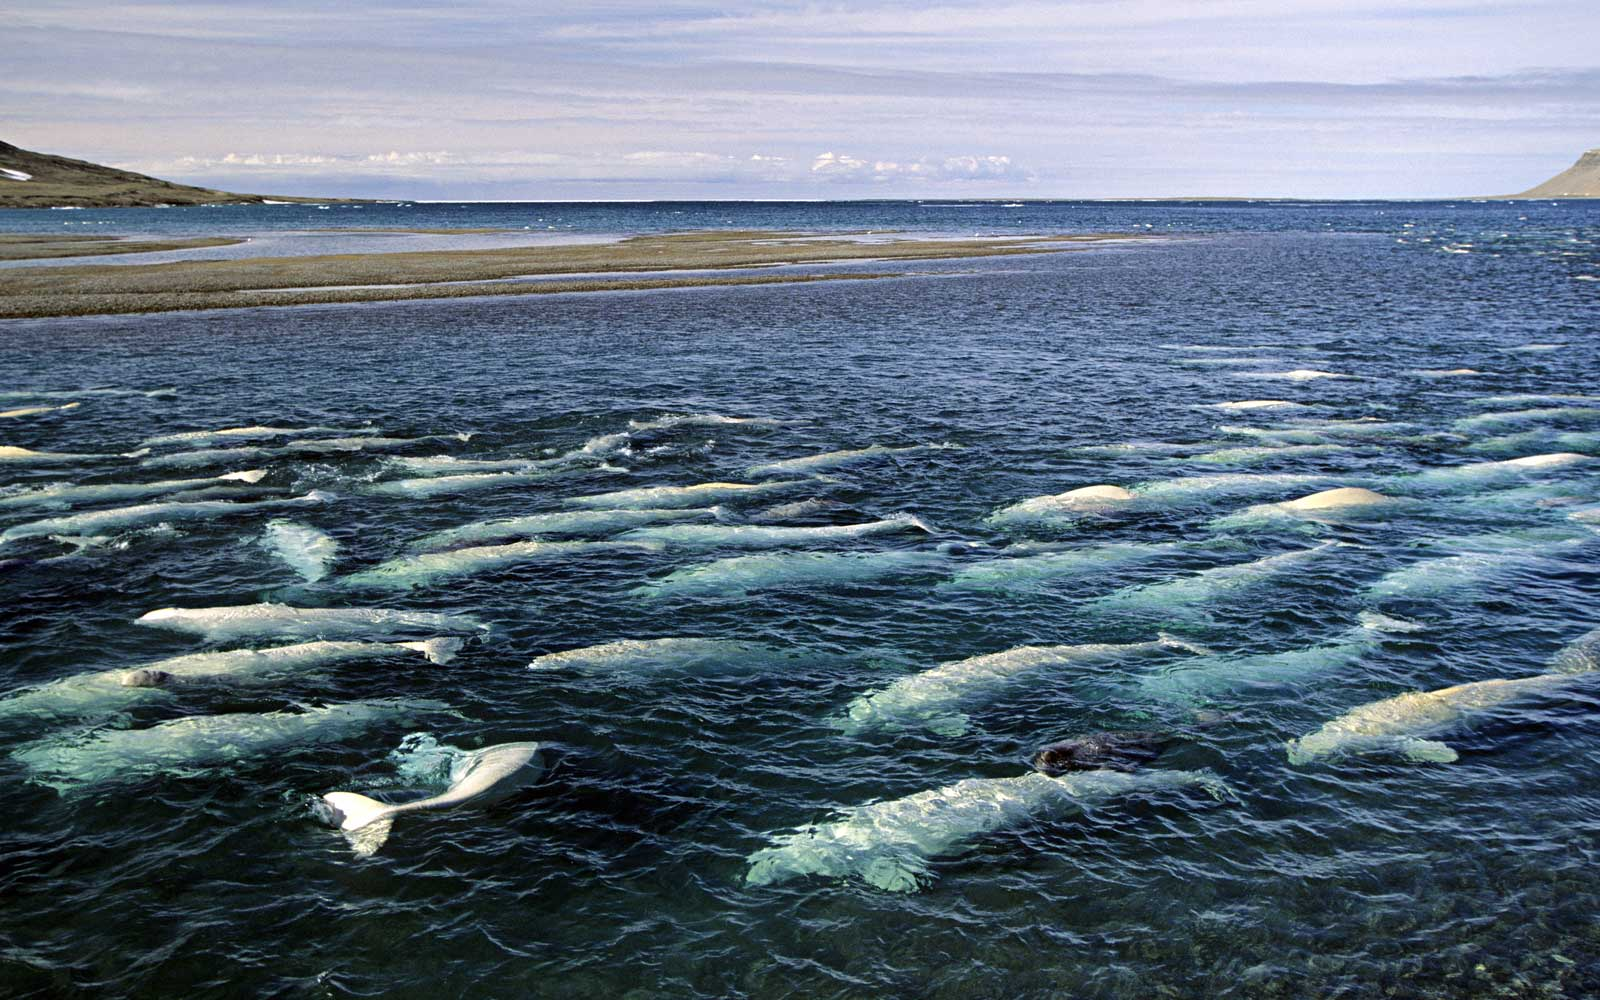 Beluga whale pod at the estuary of the Cunningham River in Nunavut, Canada